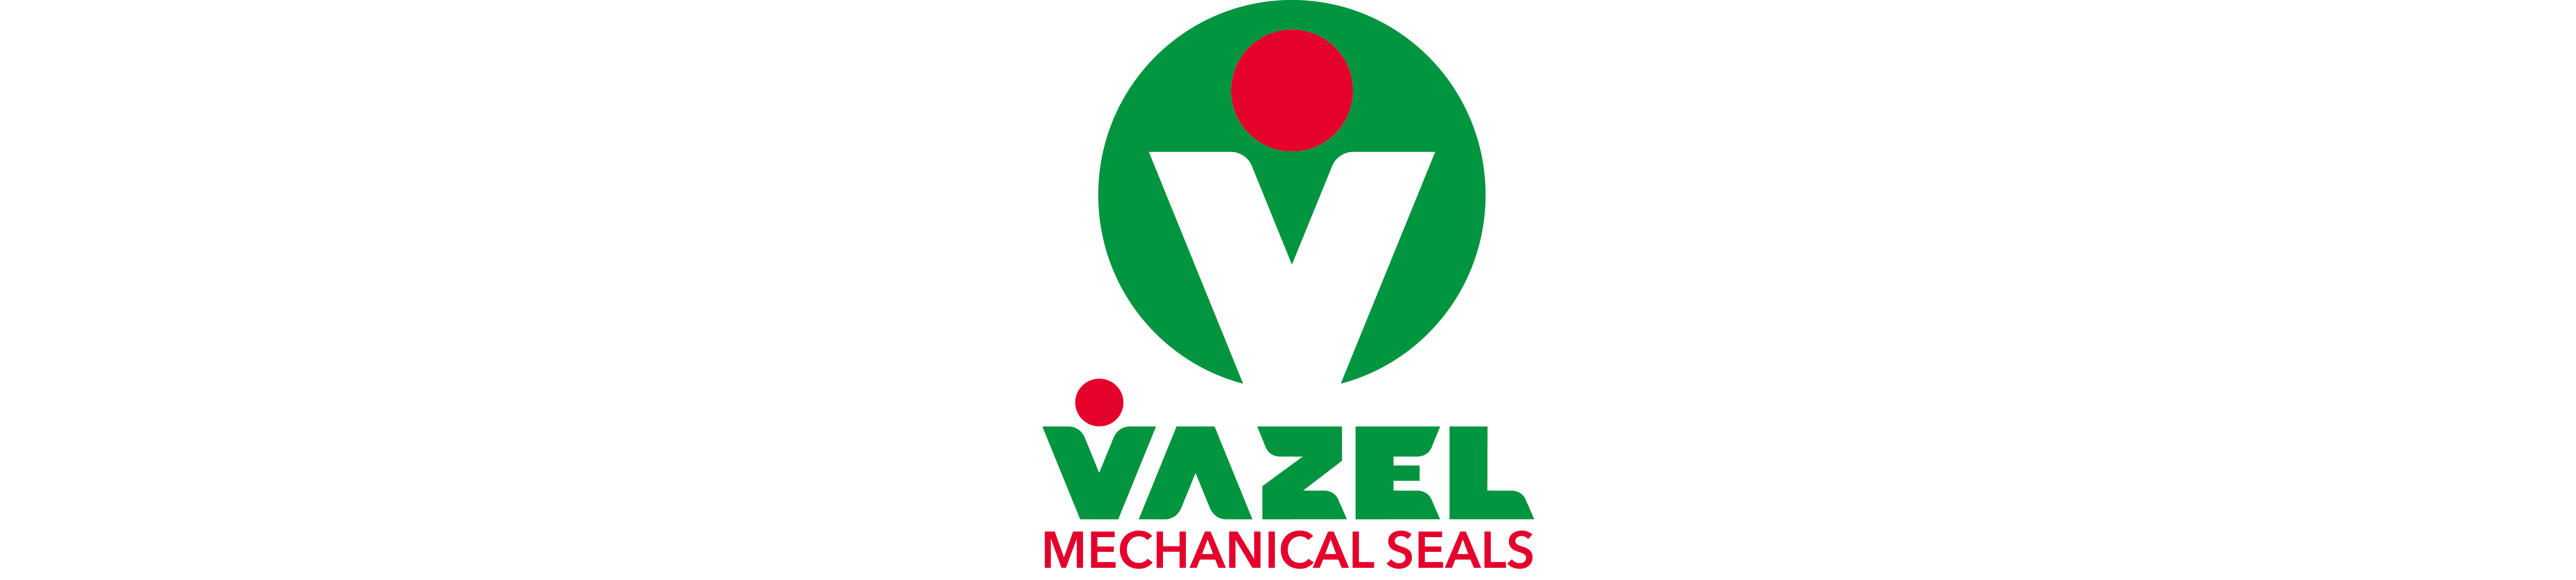 Vazel Mechanical Seals